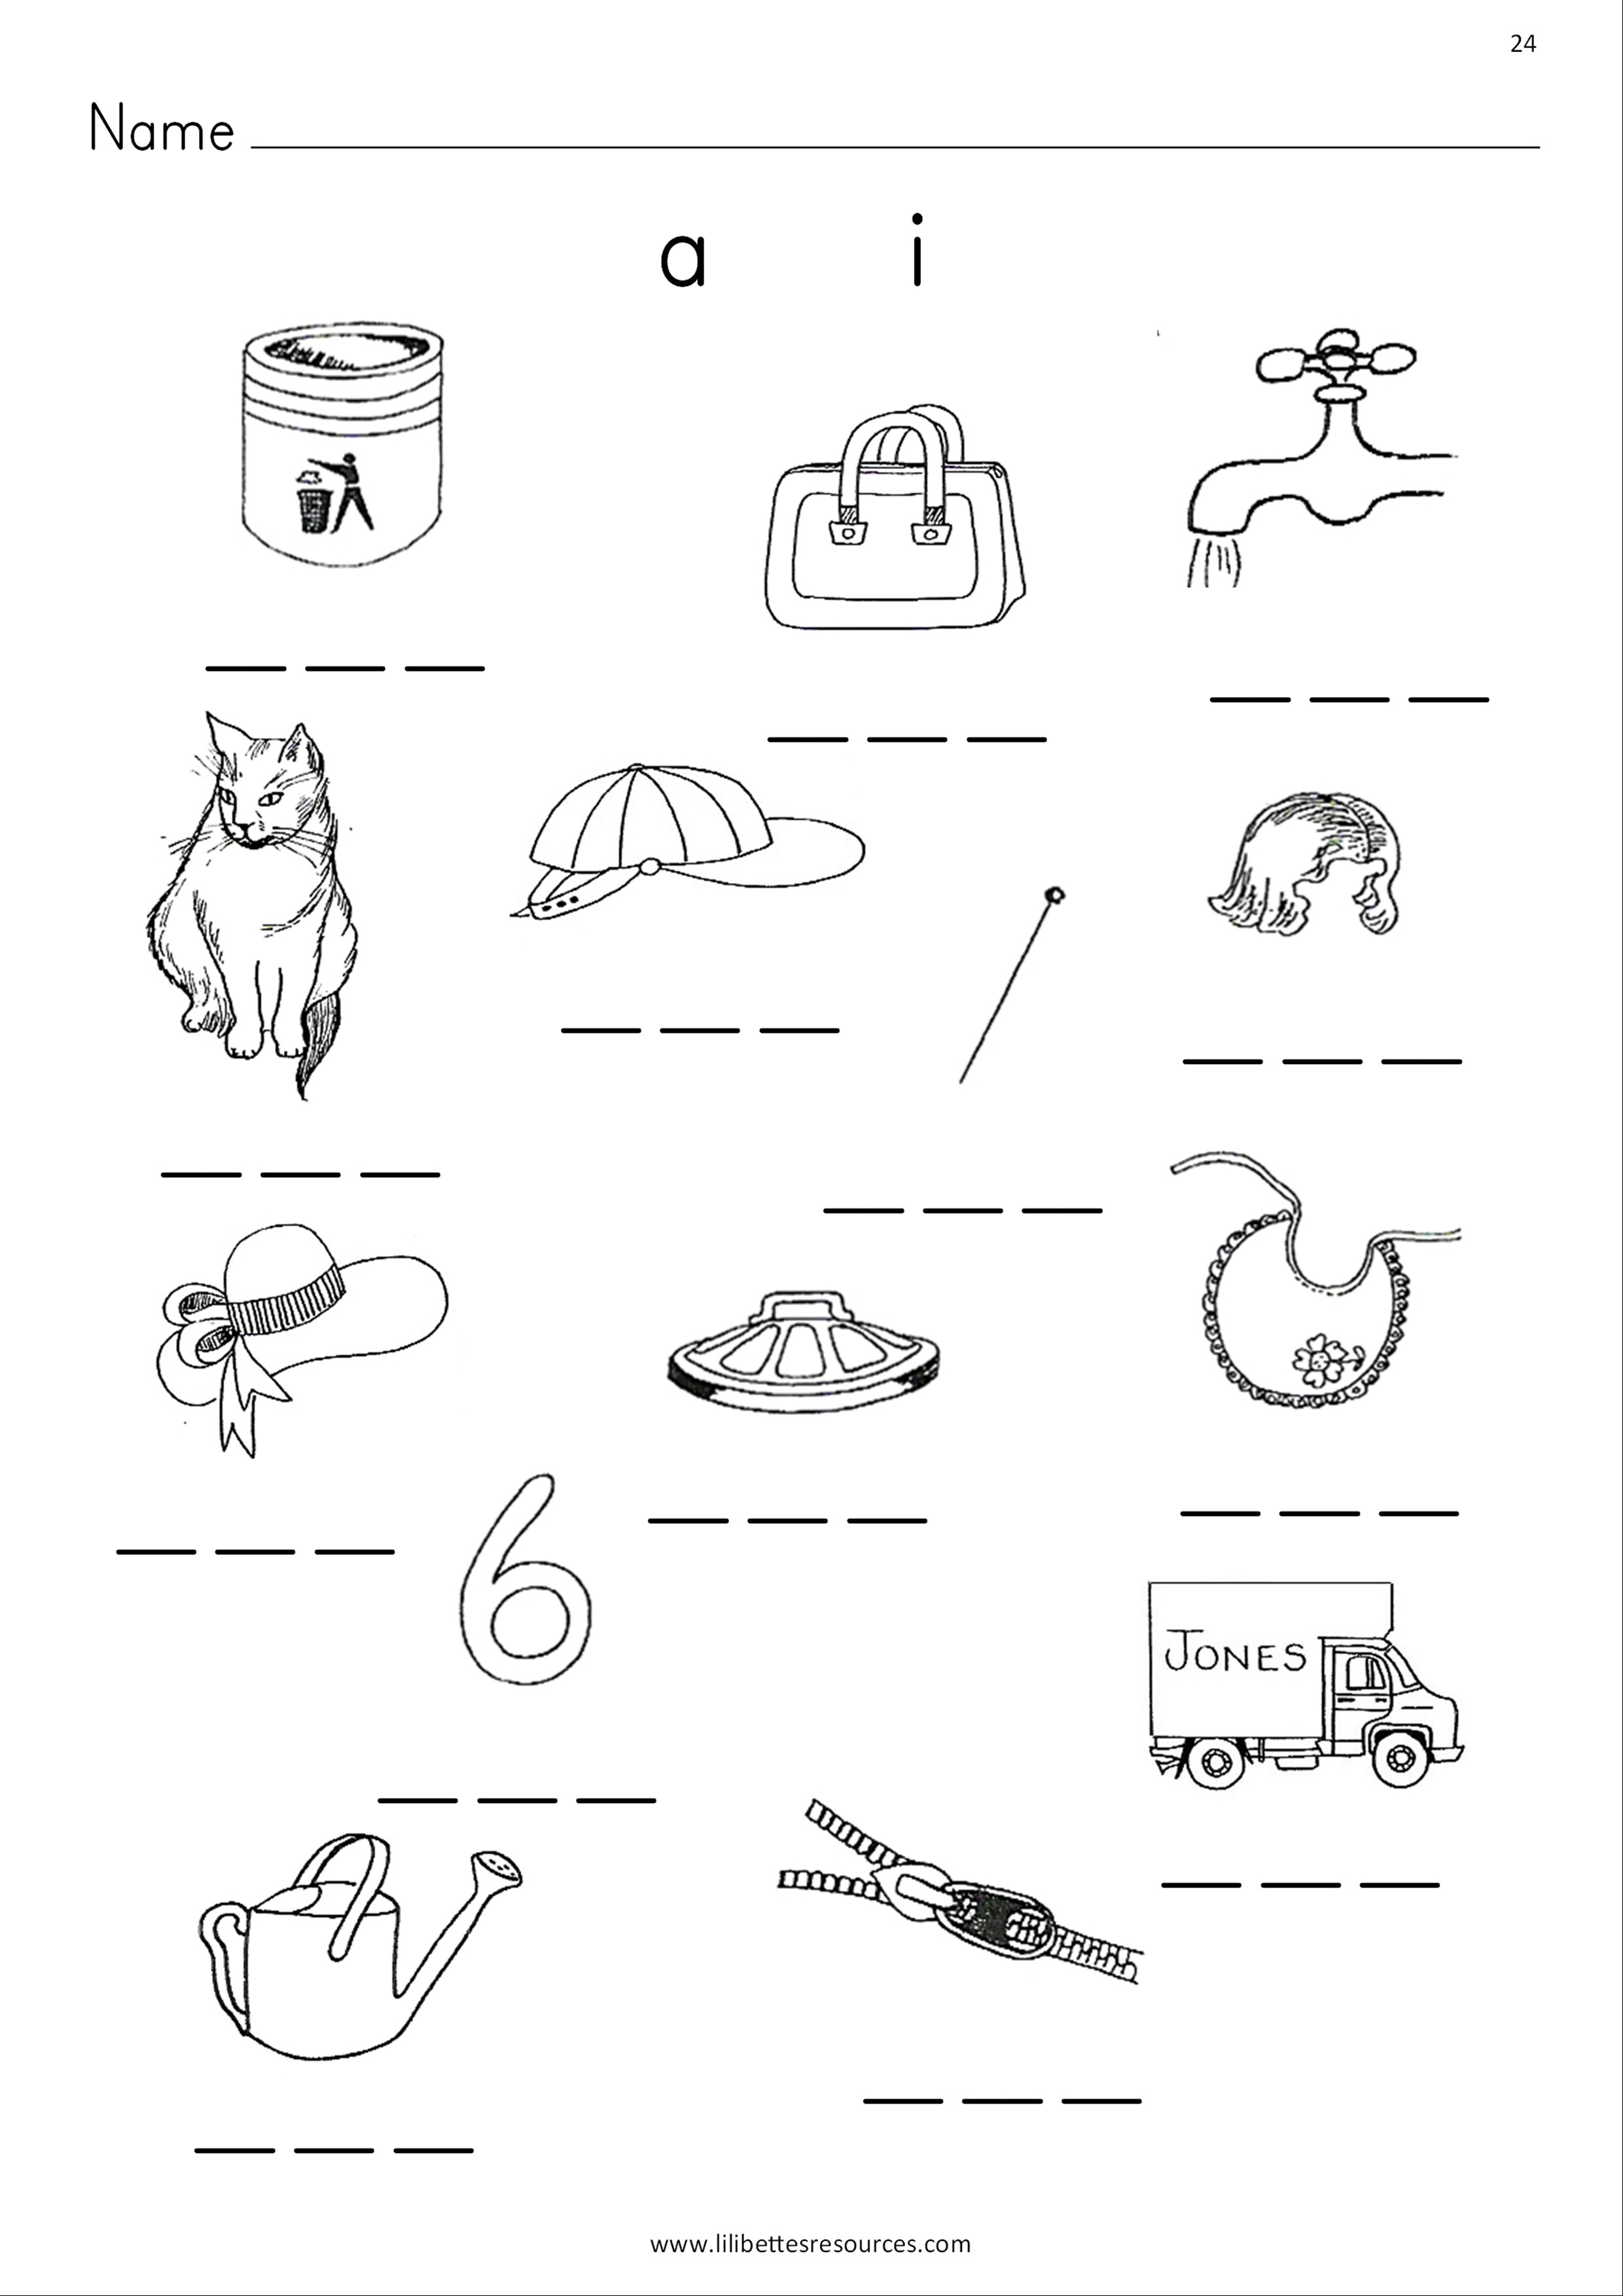 Cvc Words Phonics Worksheets Fro Free Dowbload